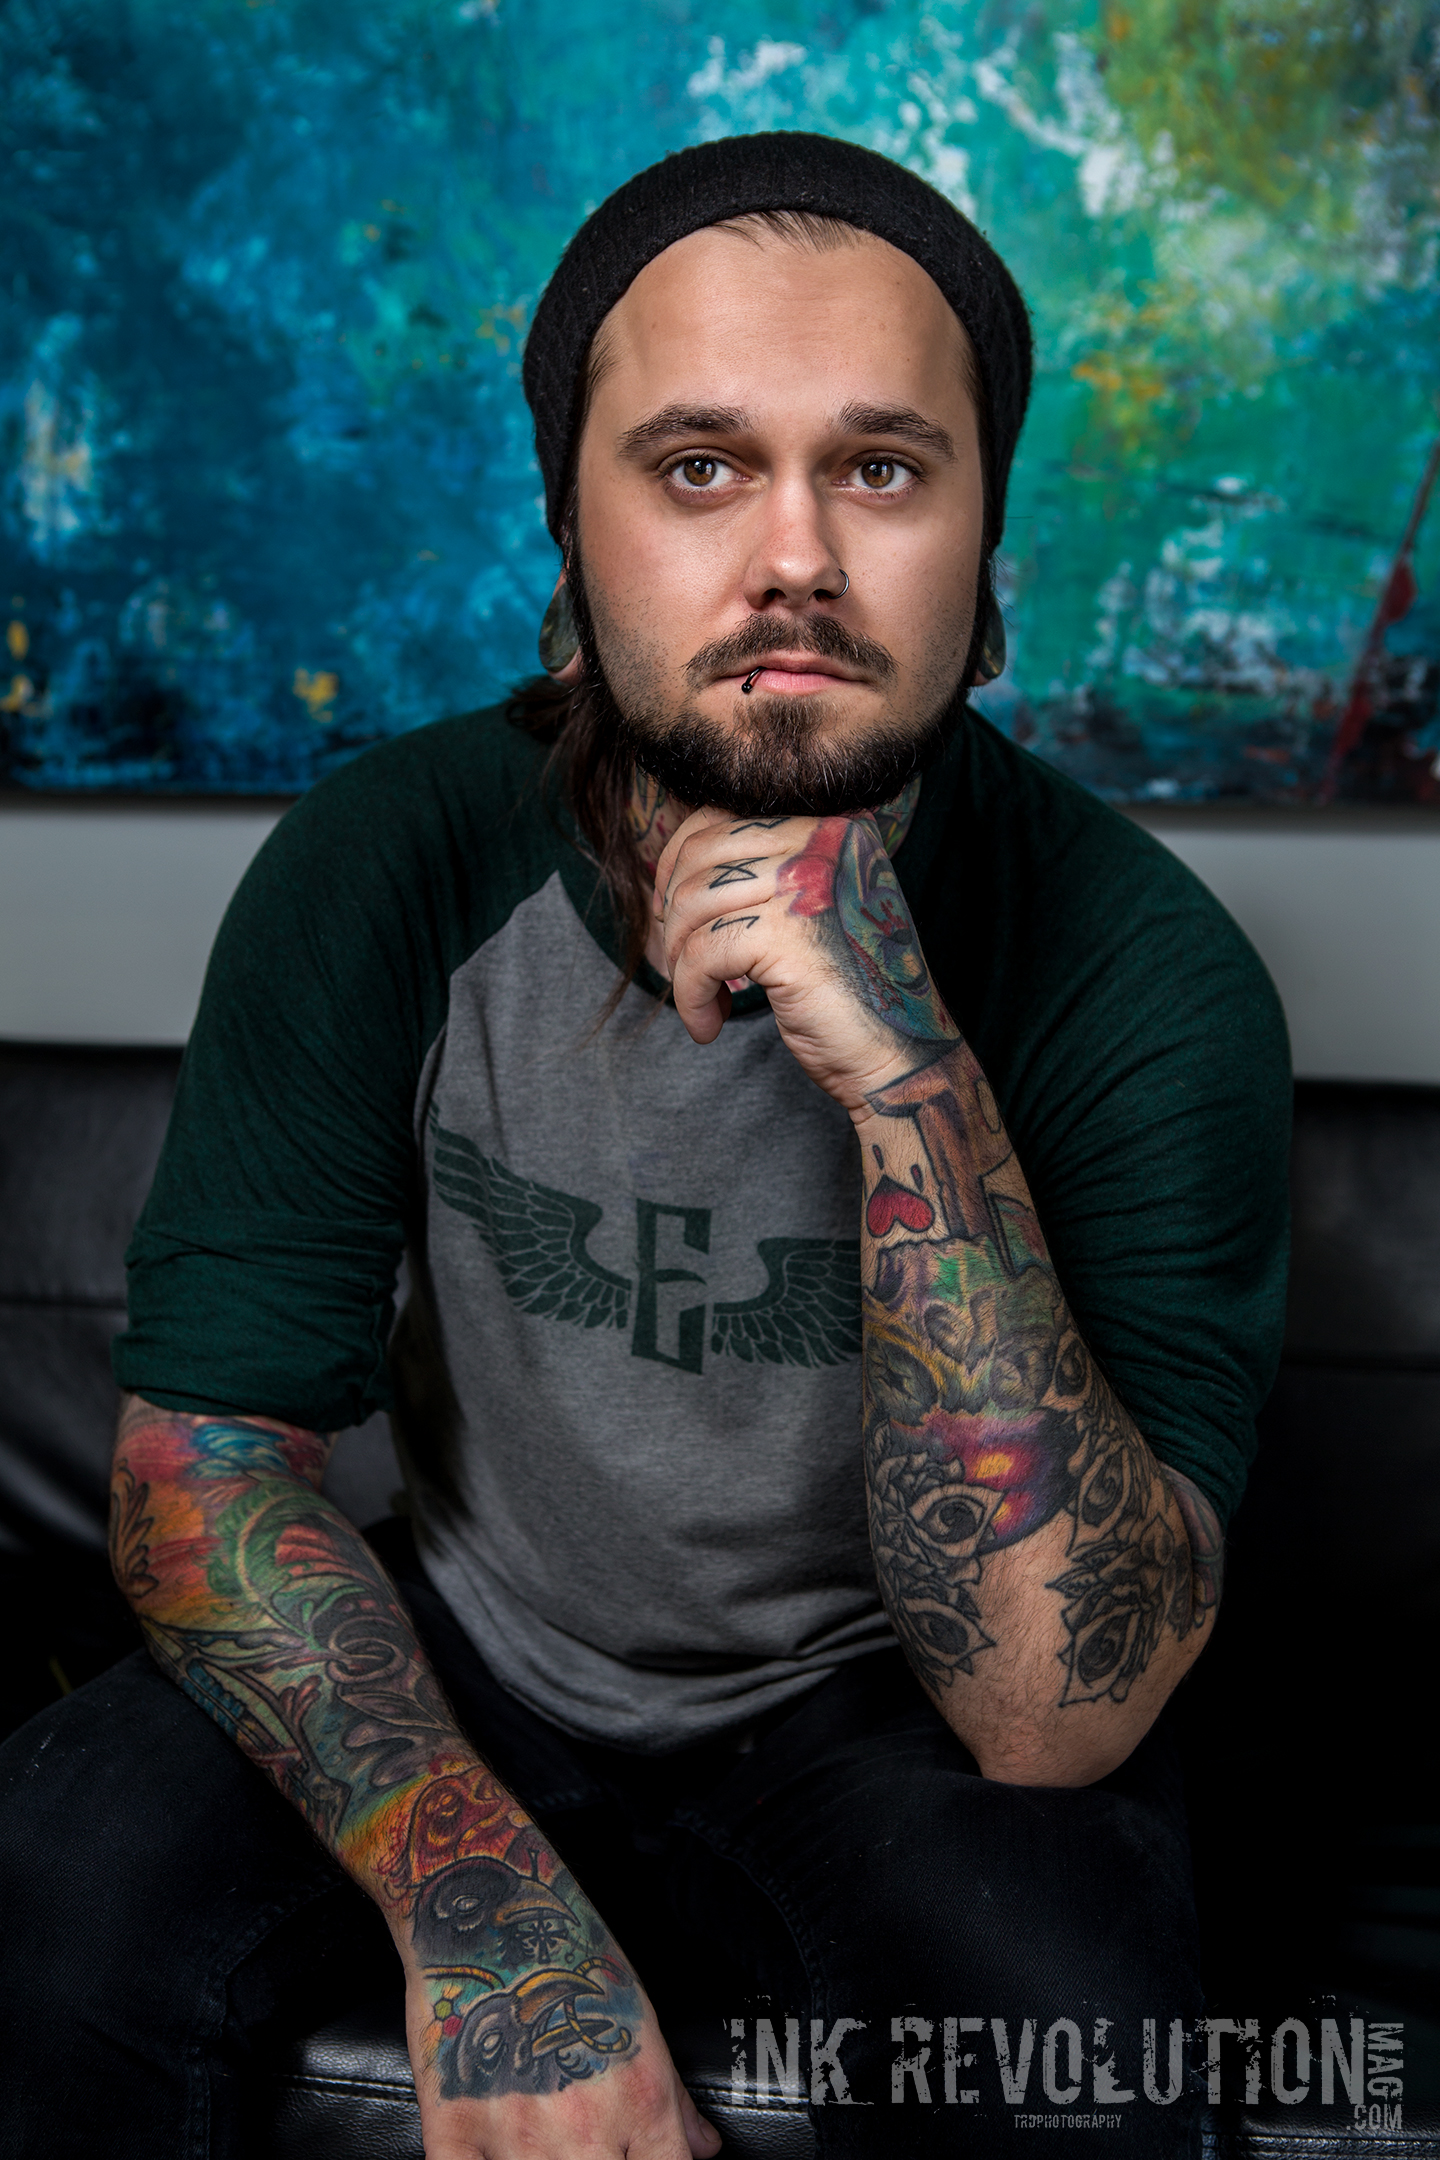 Tattoo Artist - Michael Clester - Photo TRD Photography